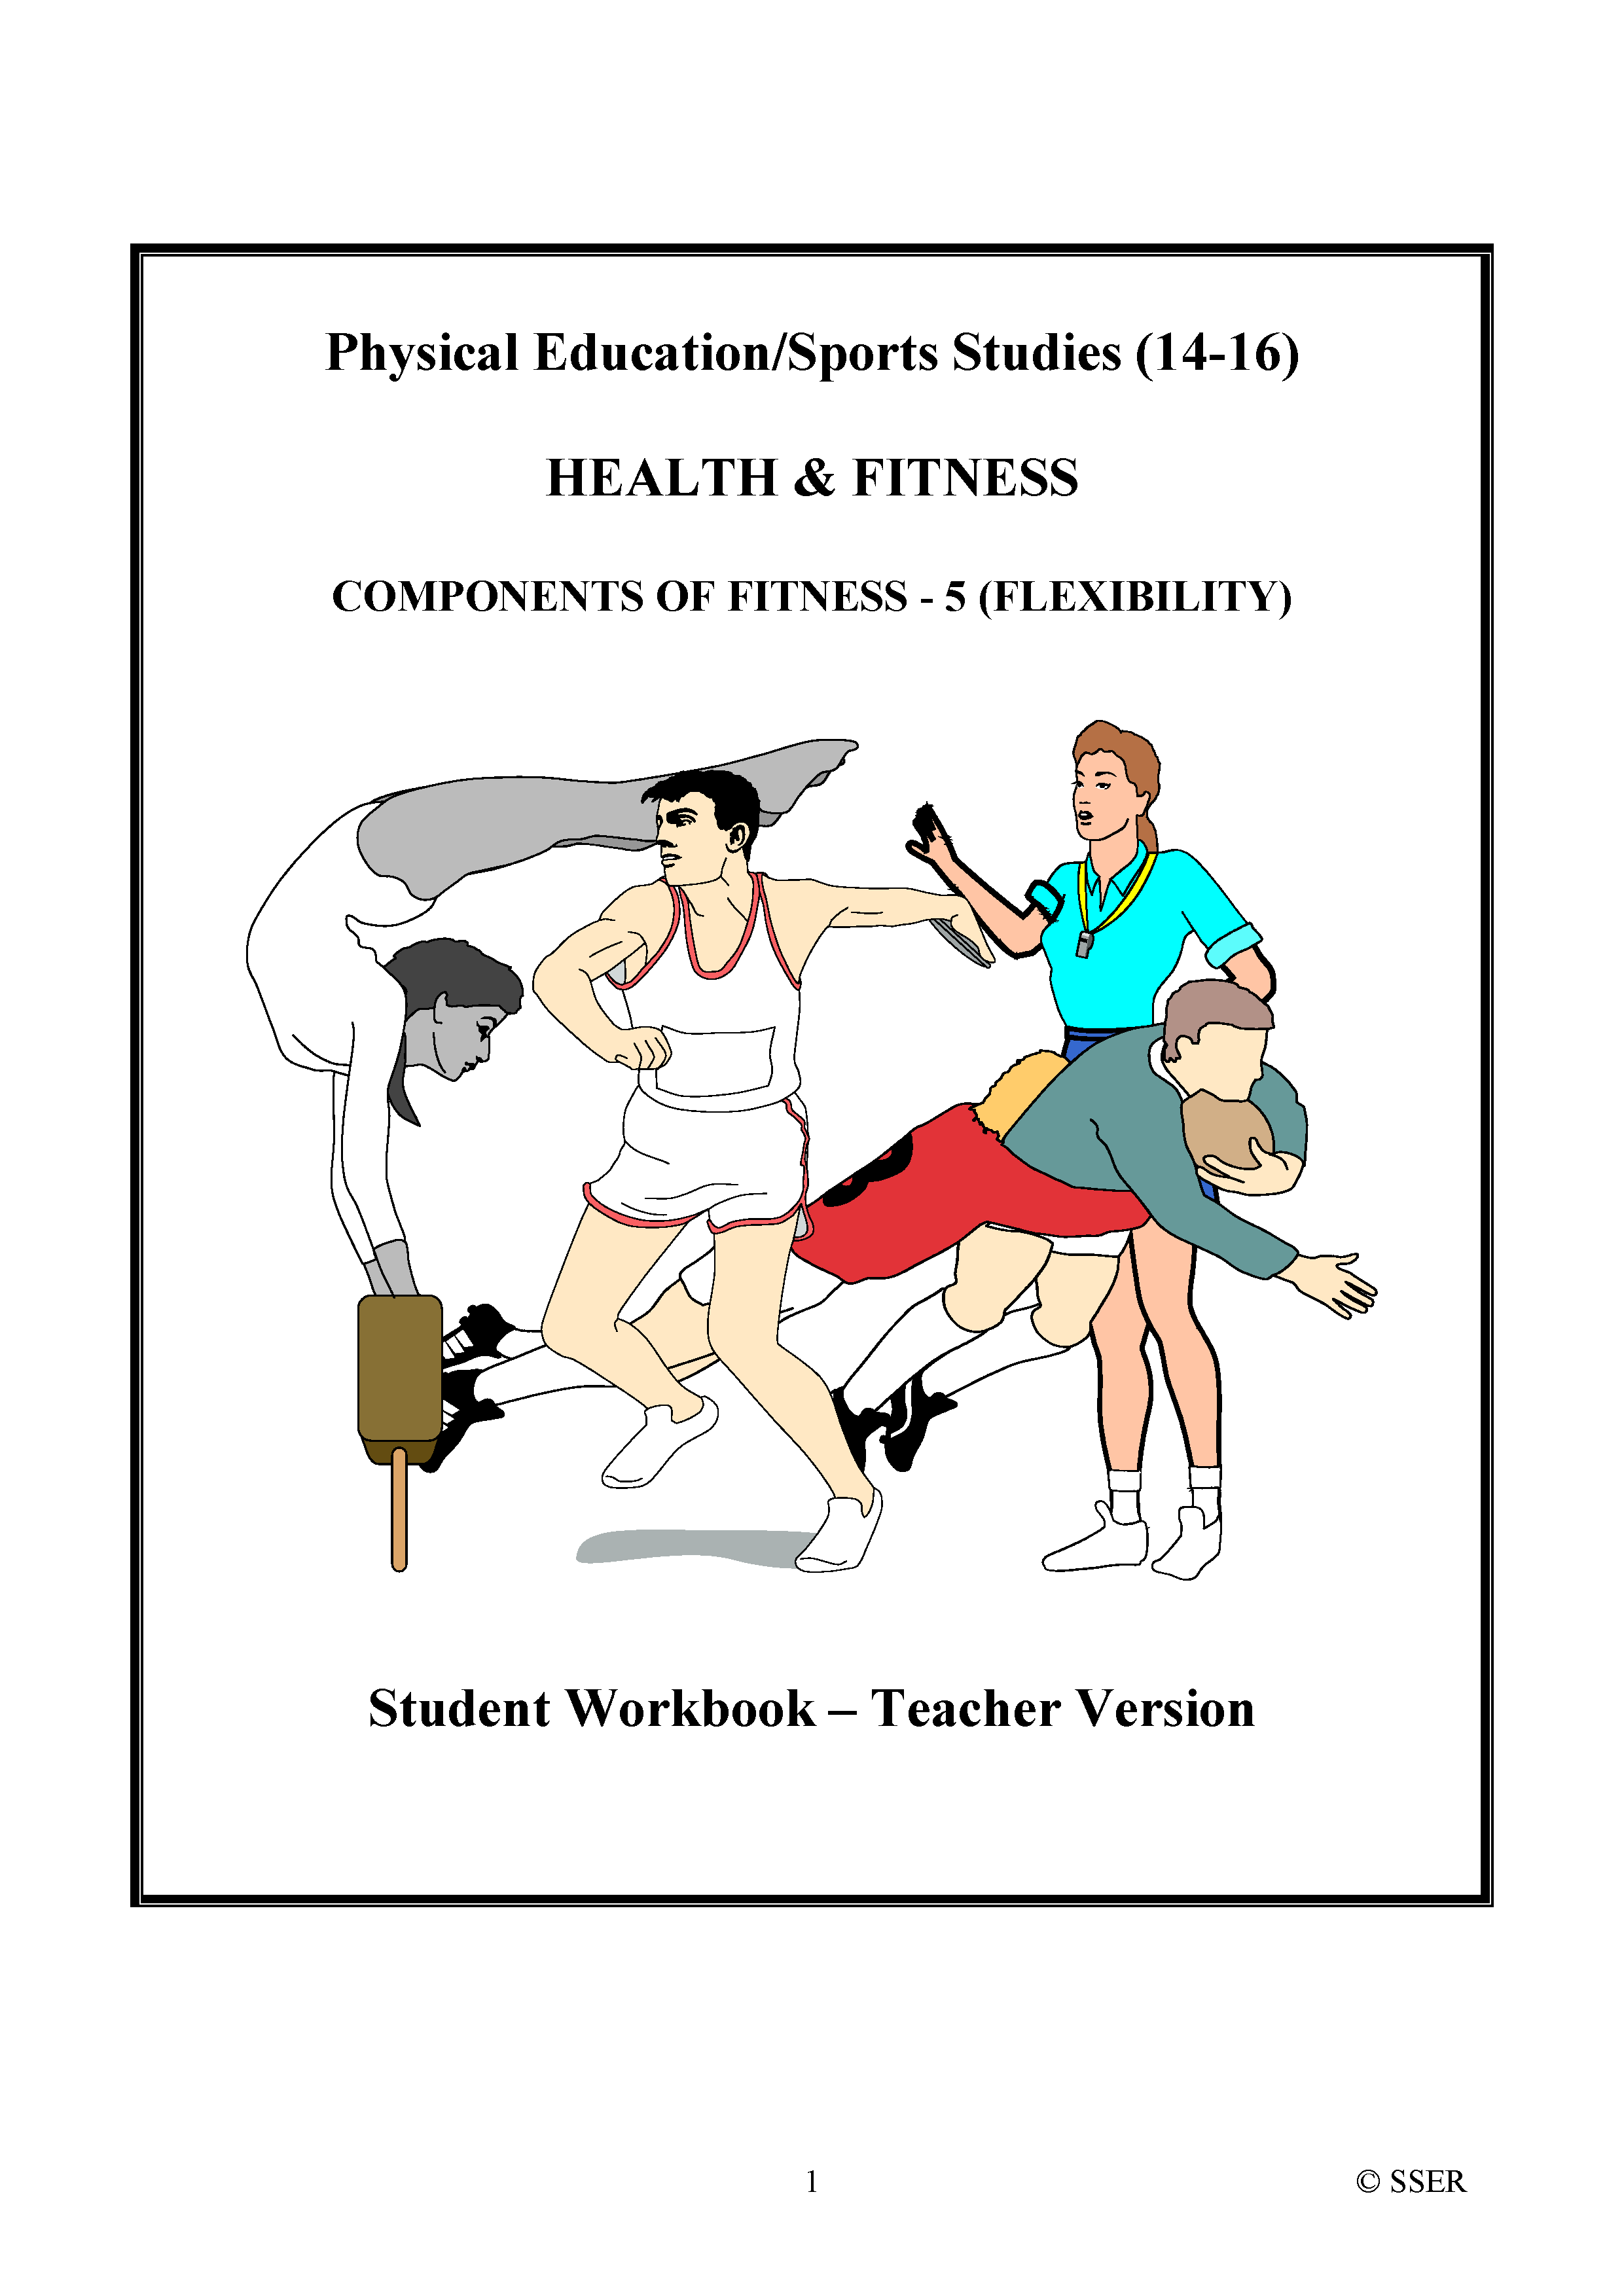 PE307ST - Components of Fitness - 5 (Flexibility) WS